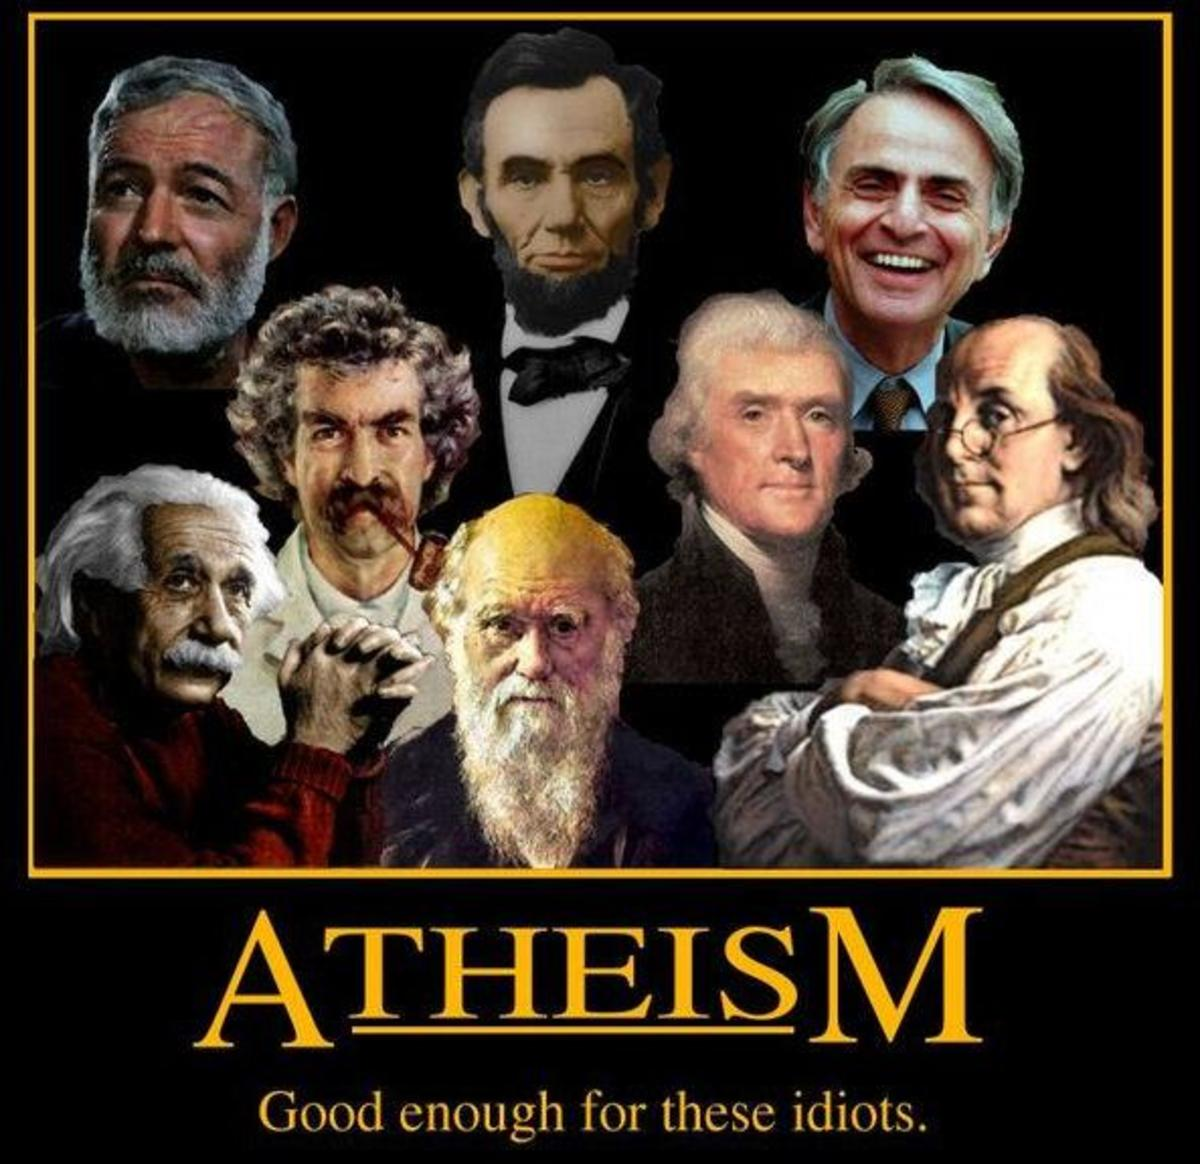 Top 10 Myths and Fallacies About Atheism